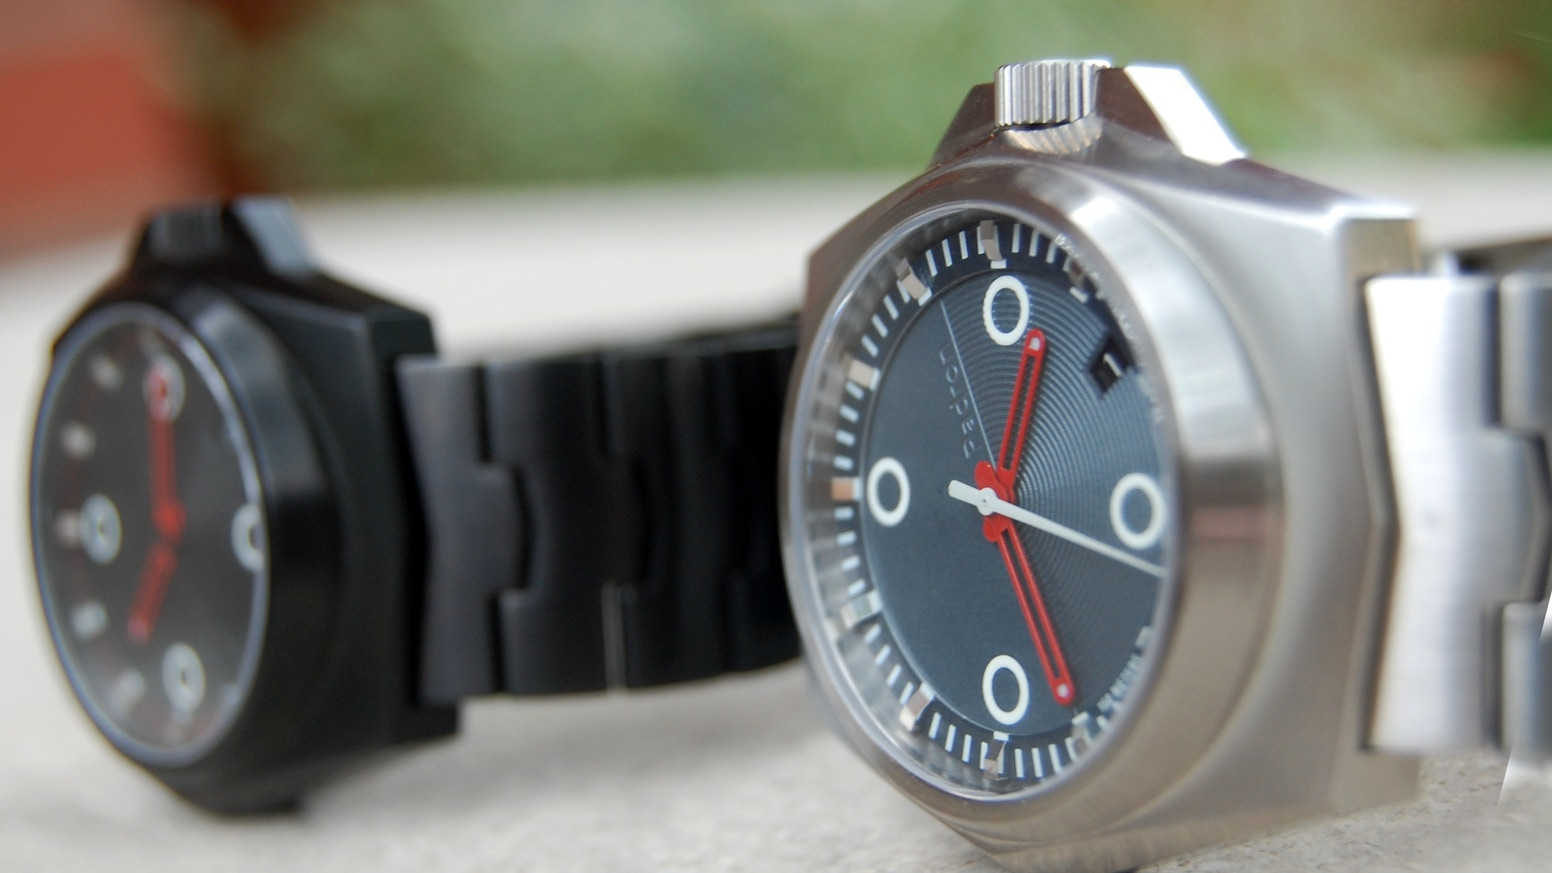 The Tessera is the classic midcentury mechanical watch rebooted for modernity, and powered by your motion.